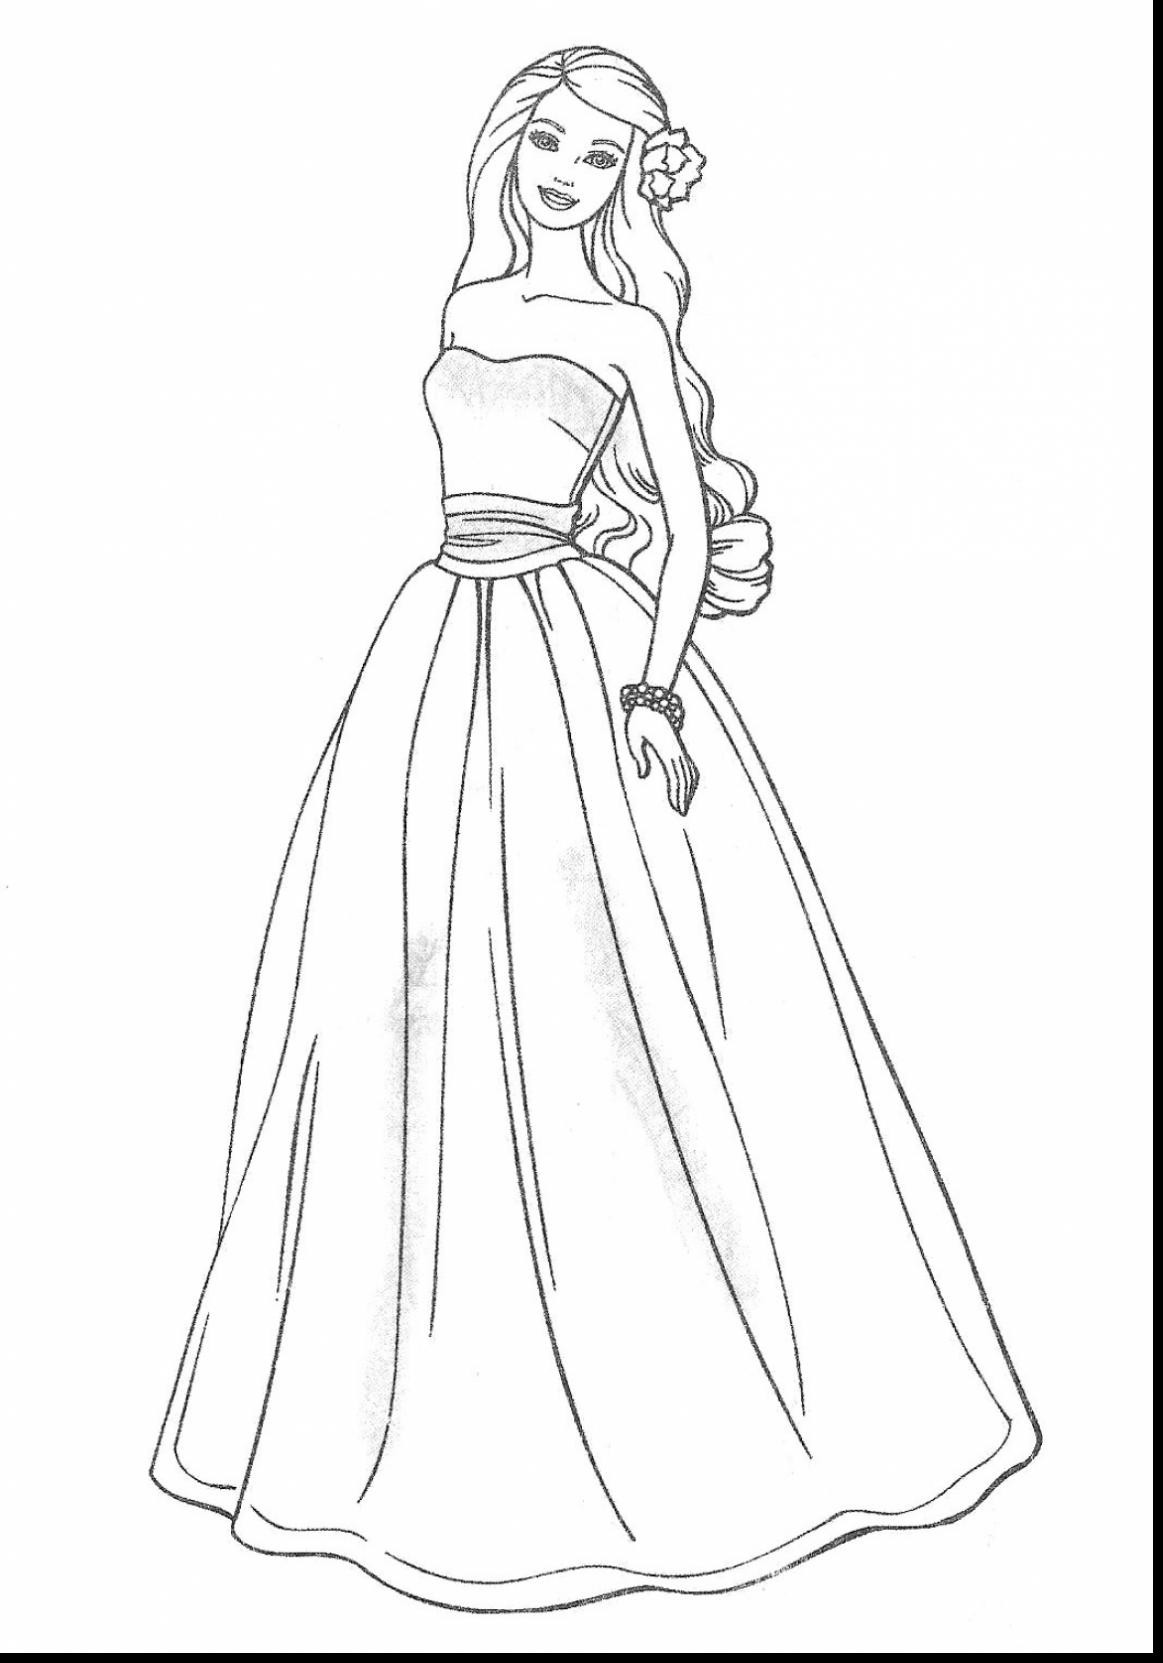 Barbie Princess Coloring Pages At Getdrawings Com Free For